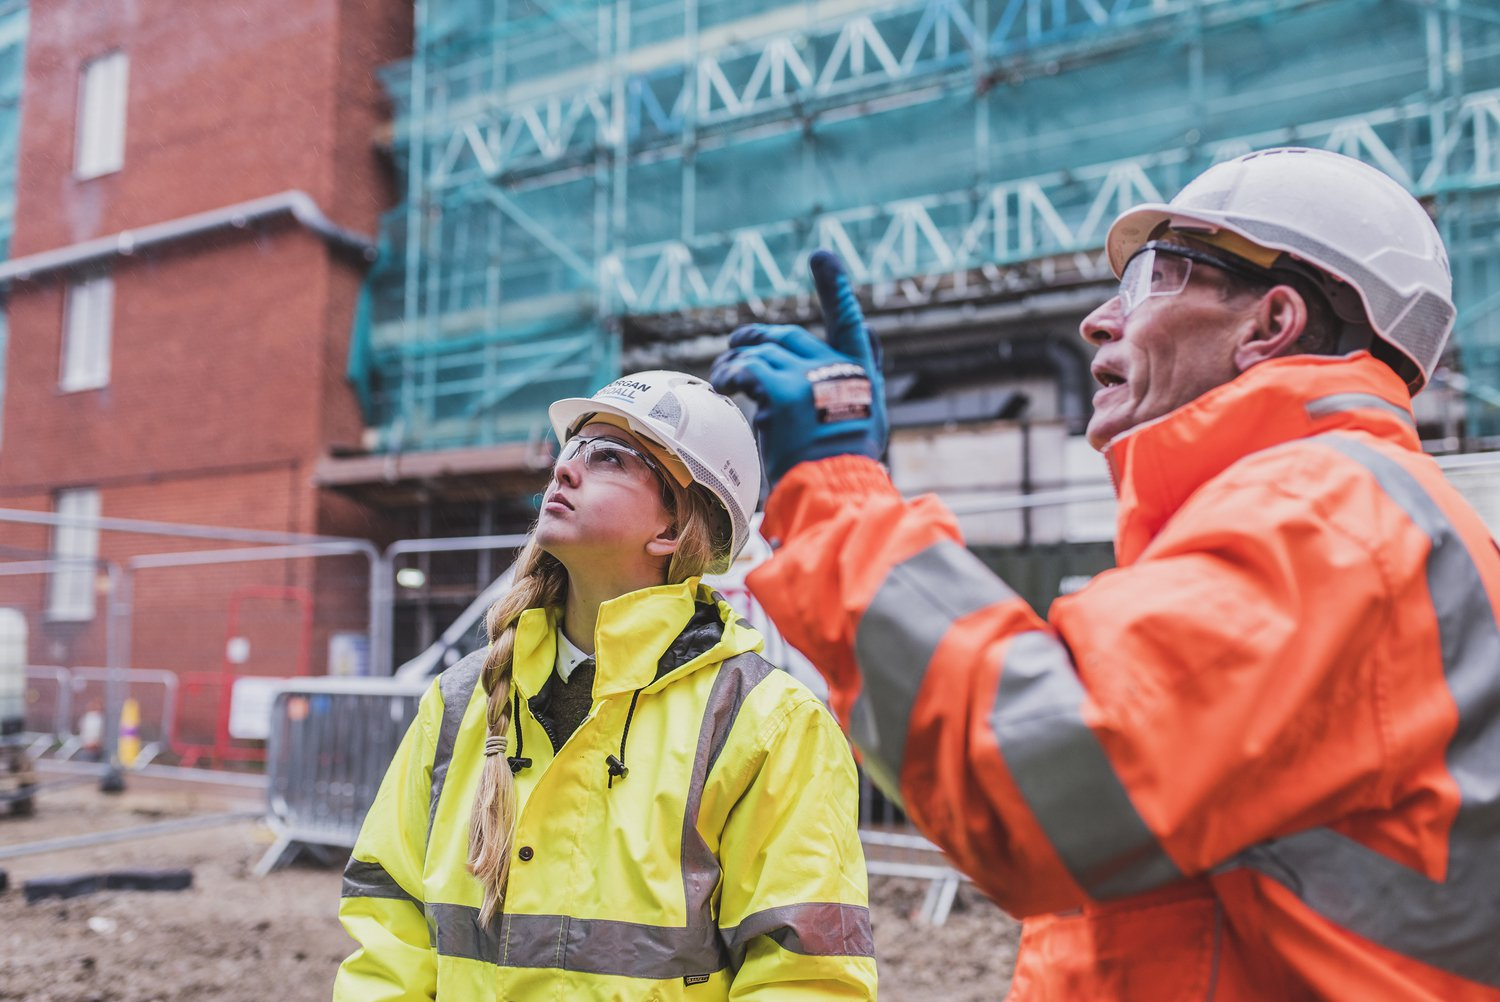 A picture of an apprentice on a site visit during the construction process